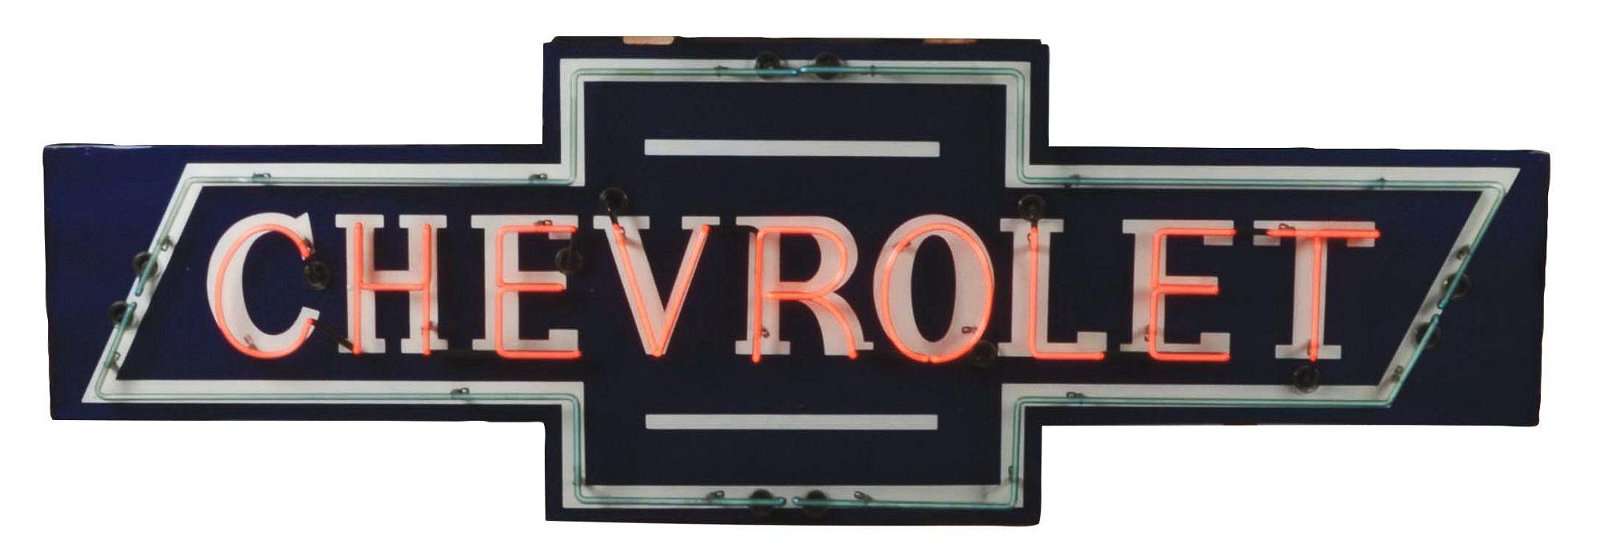 Large Chevrolet Die Cut Bow Tie Tin Neon Sign On Metal